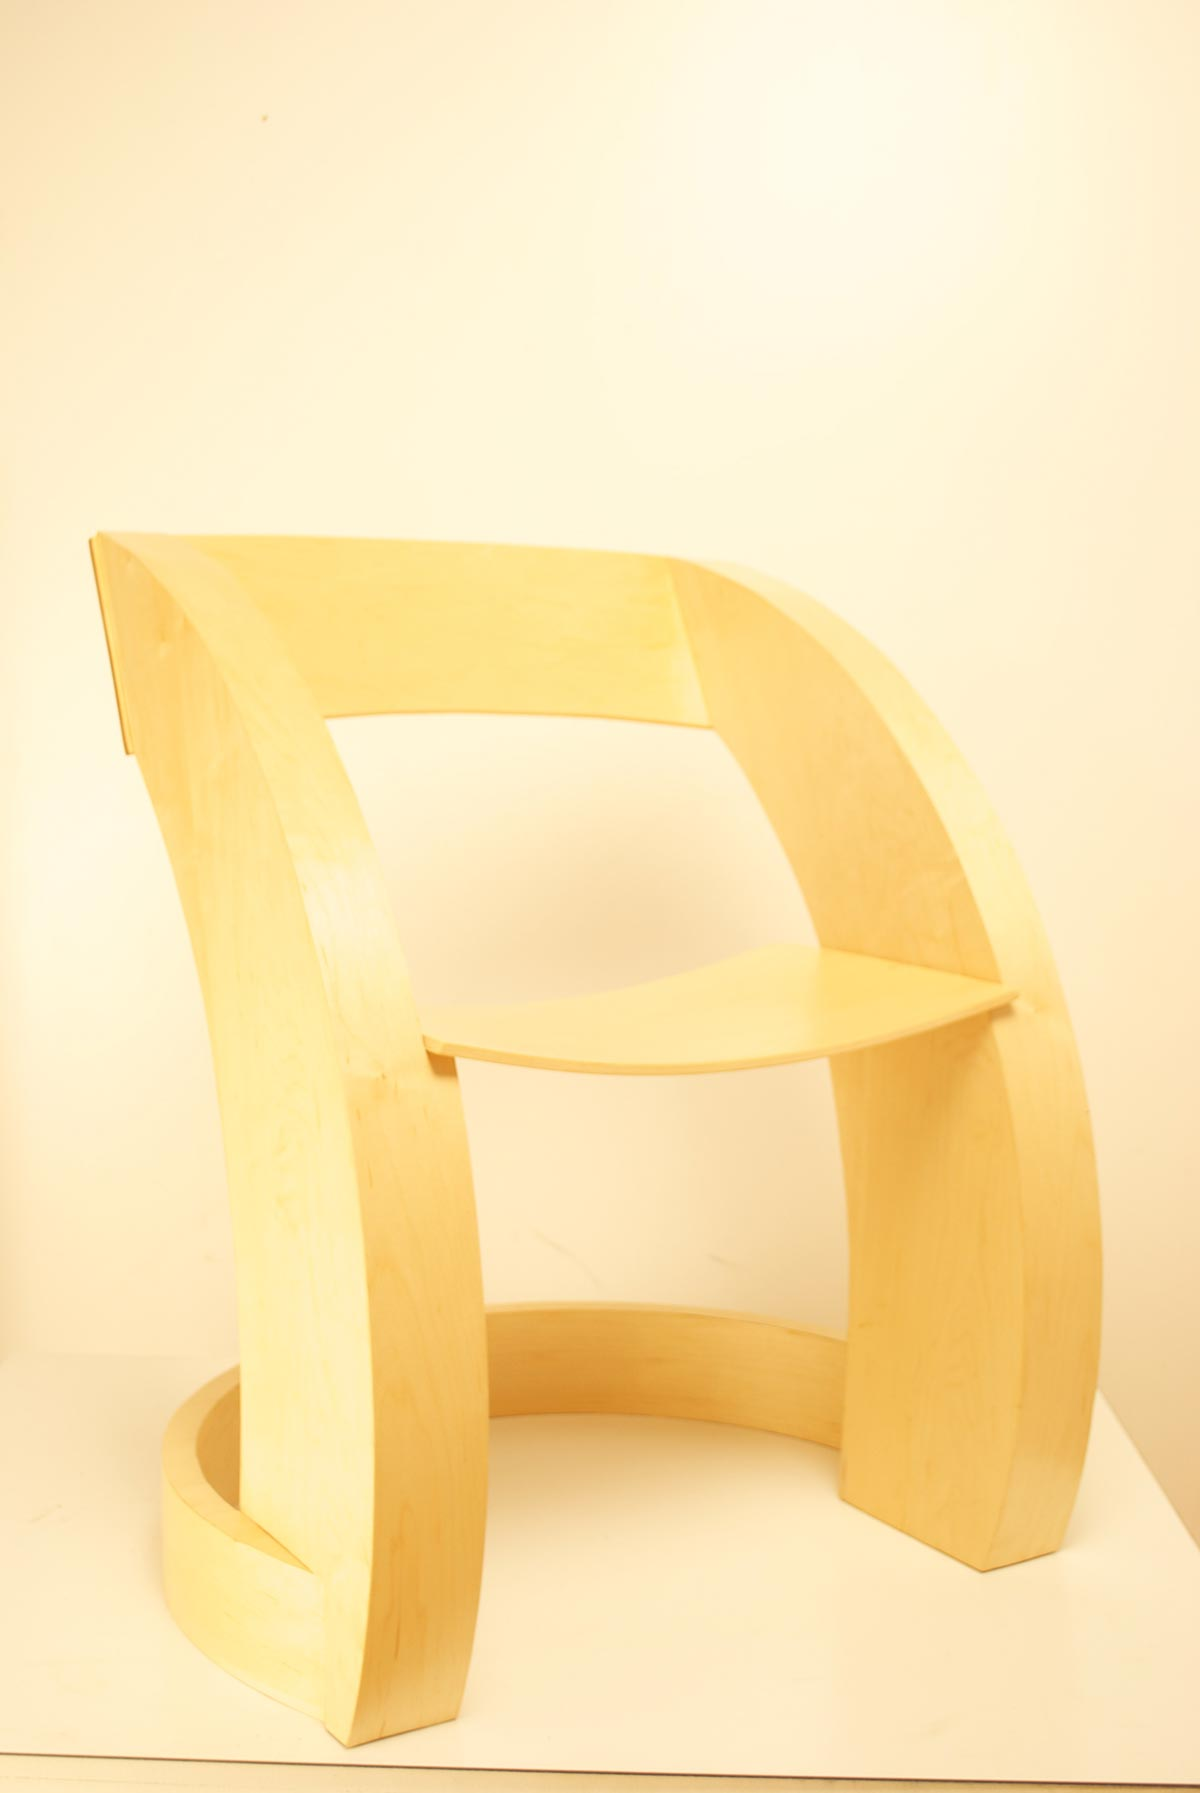 Art 4990 | Chair Art: 5